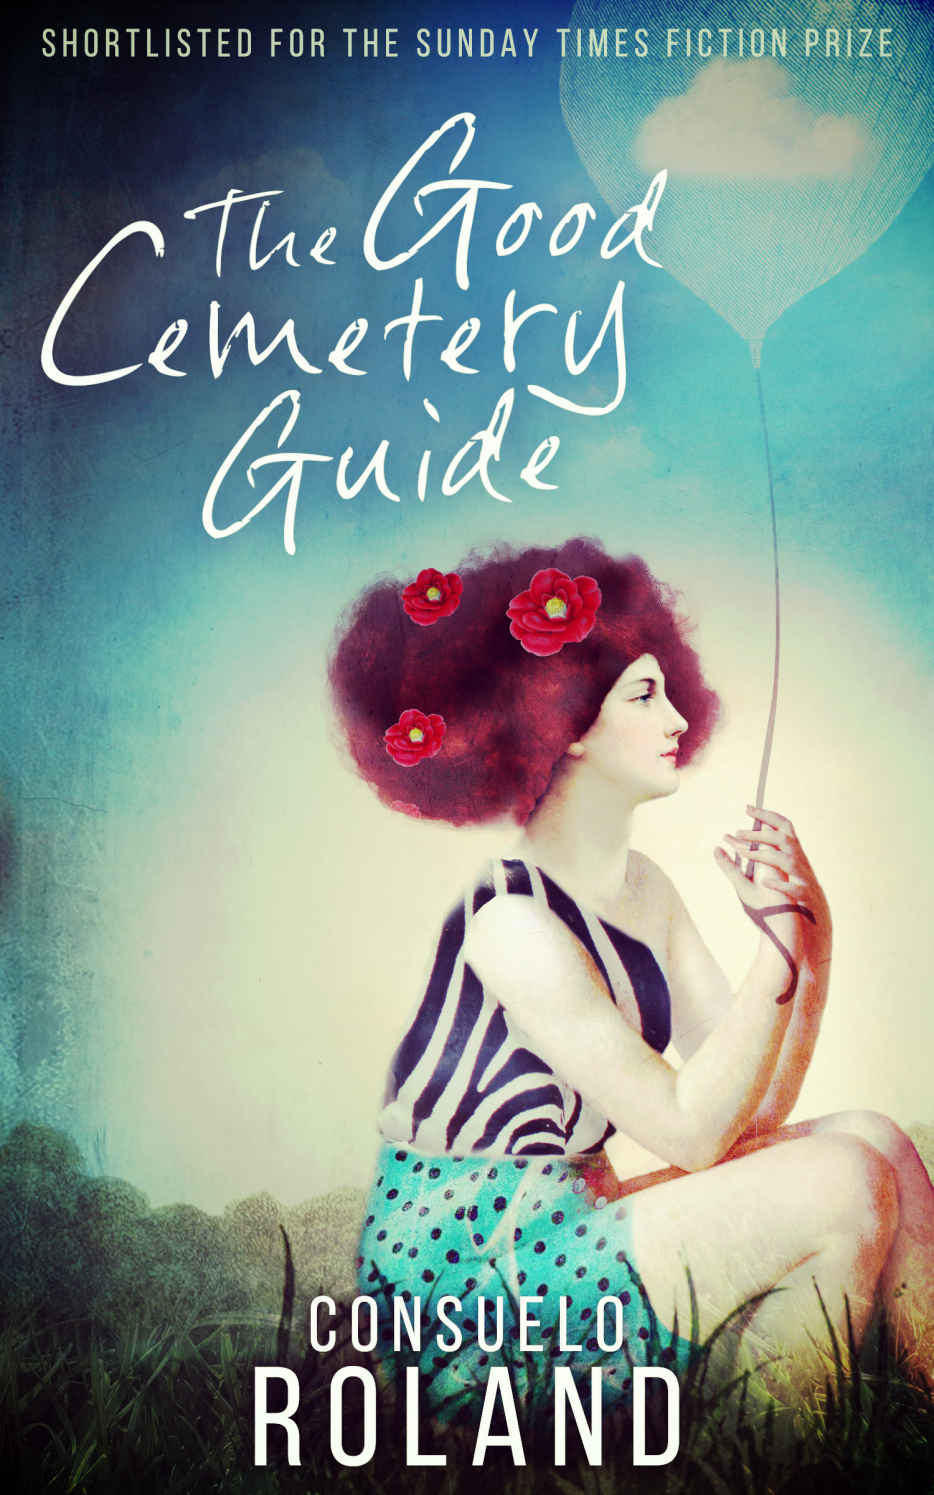 The Good Cemetery Guide, a Contemporary Literary Novel by South African  Author, Consuelo Roland